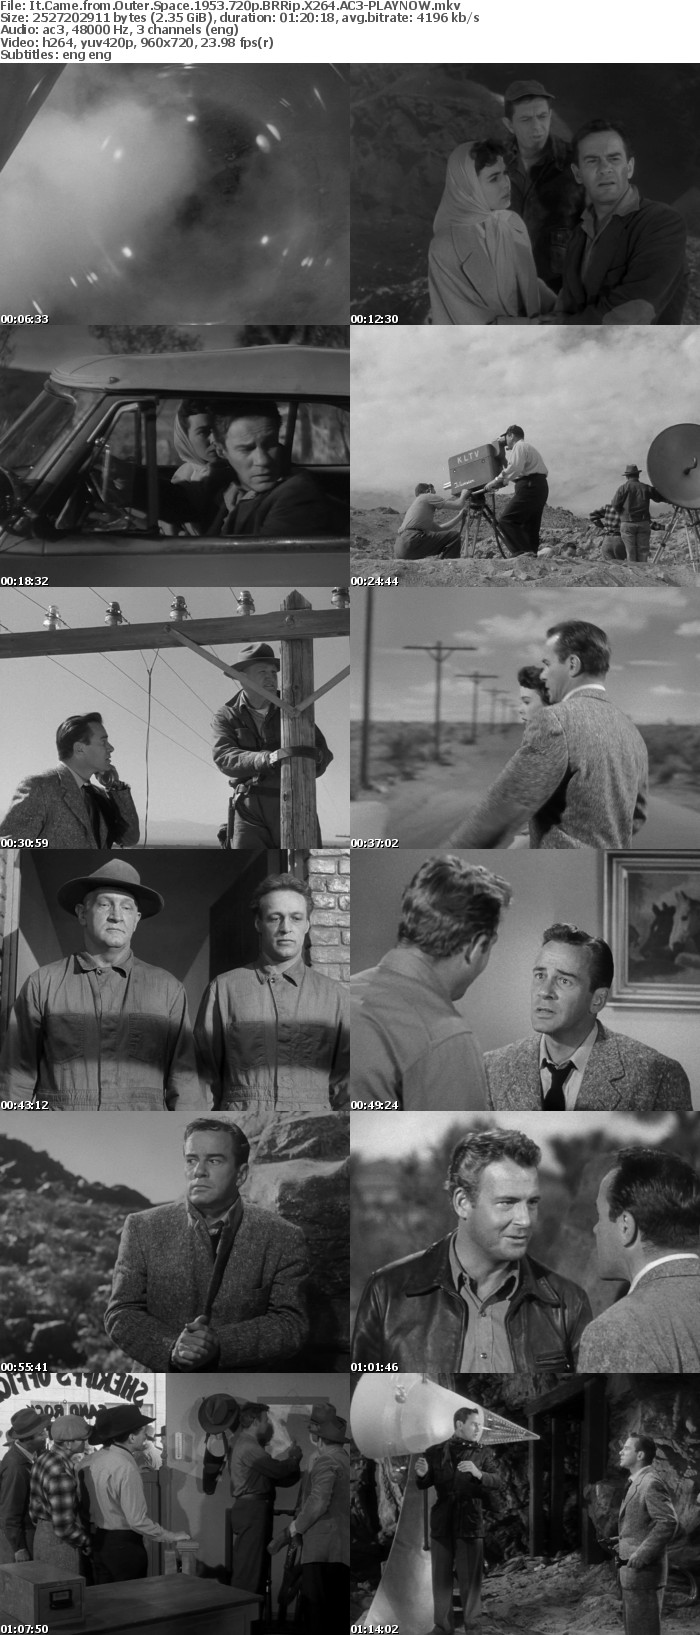 It Came from Outer Space 1953 720p BRRip X264 AC3 PLAYNOW